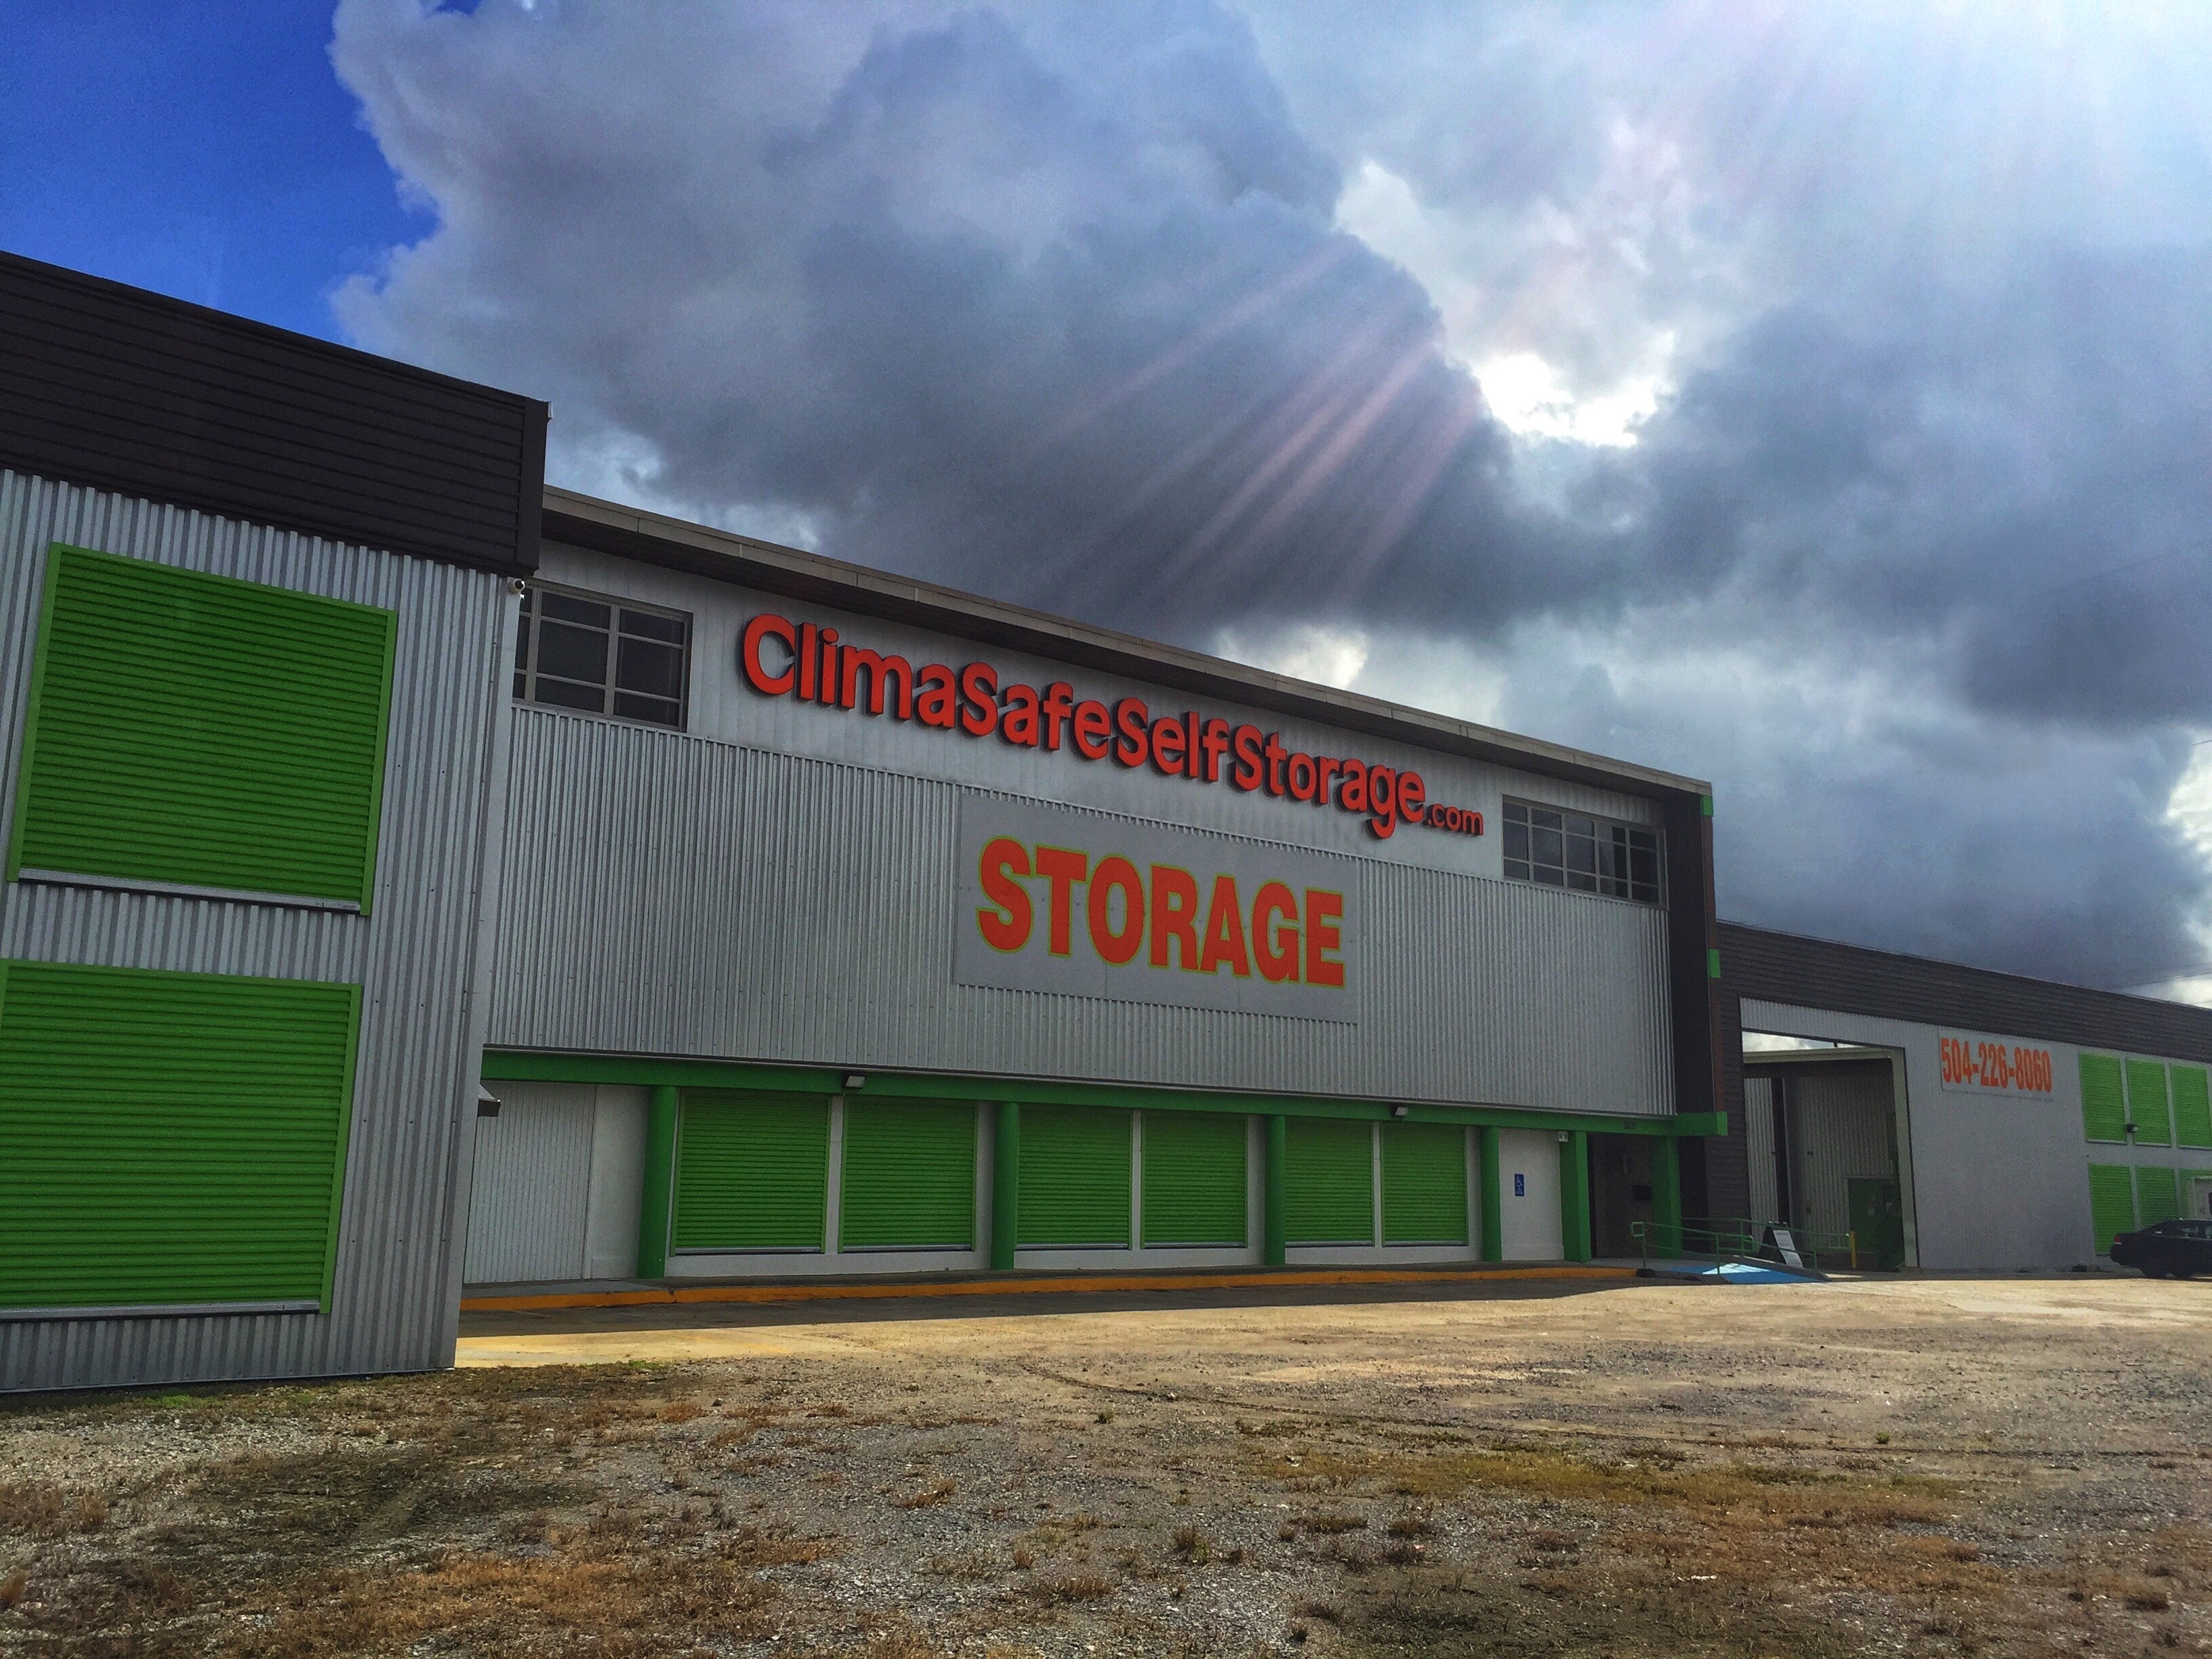 ClimaSafe Self Storage